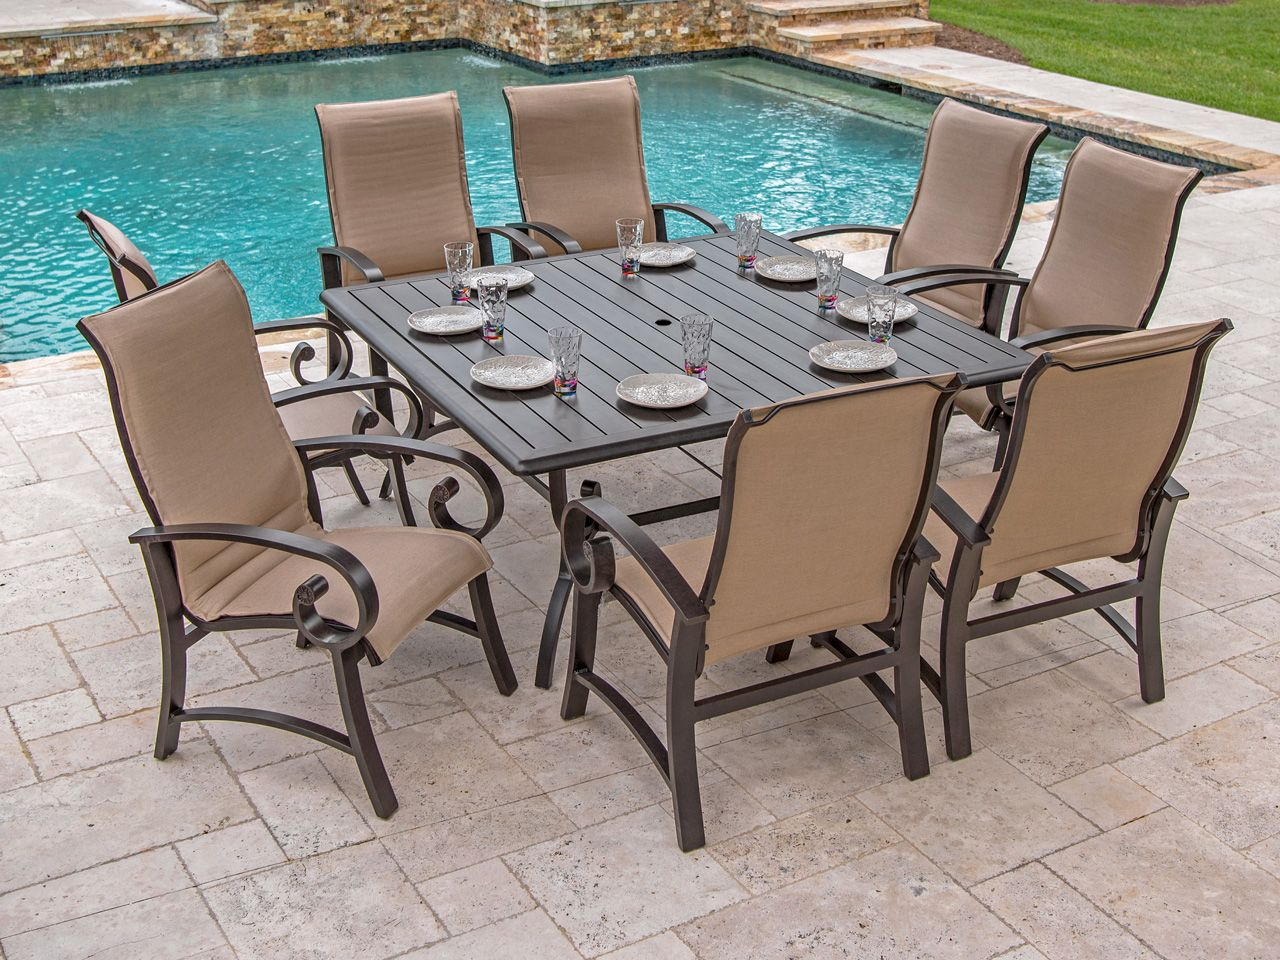 Summit Padded Sling 8 Pc Aluminum Dining Set With 64 Square Slat Top Table Outdoor Furniture Sets Outdoor Furniture Dining Furniture - Outdoor Furniture Clearance Houston